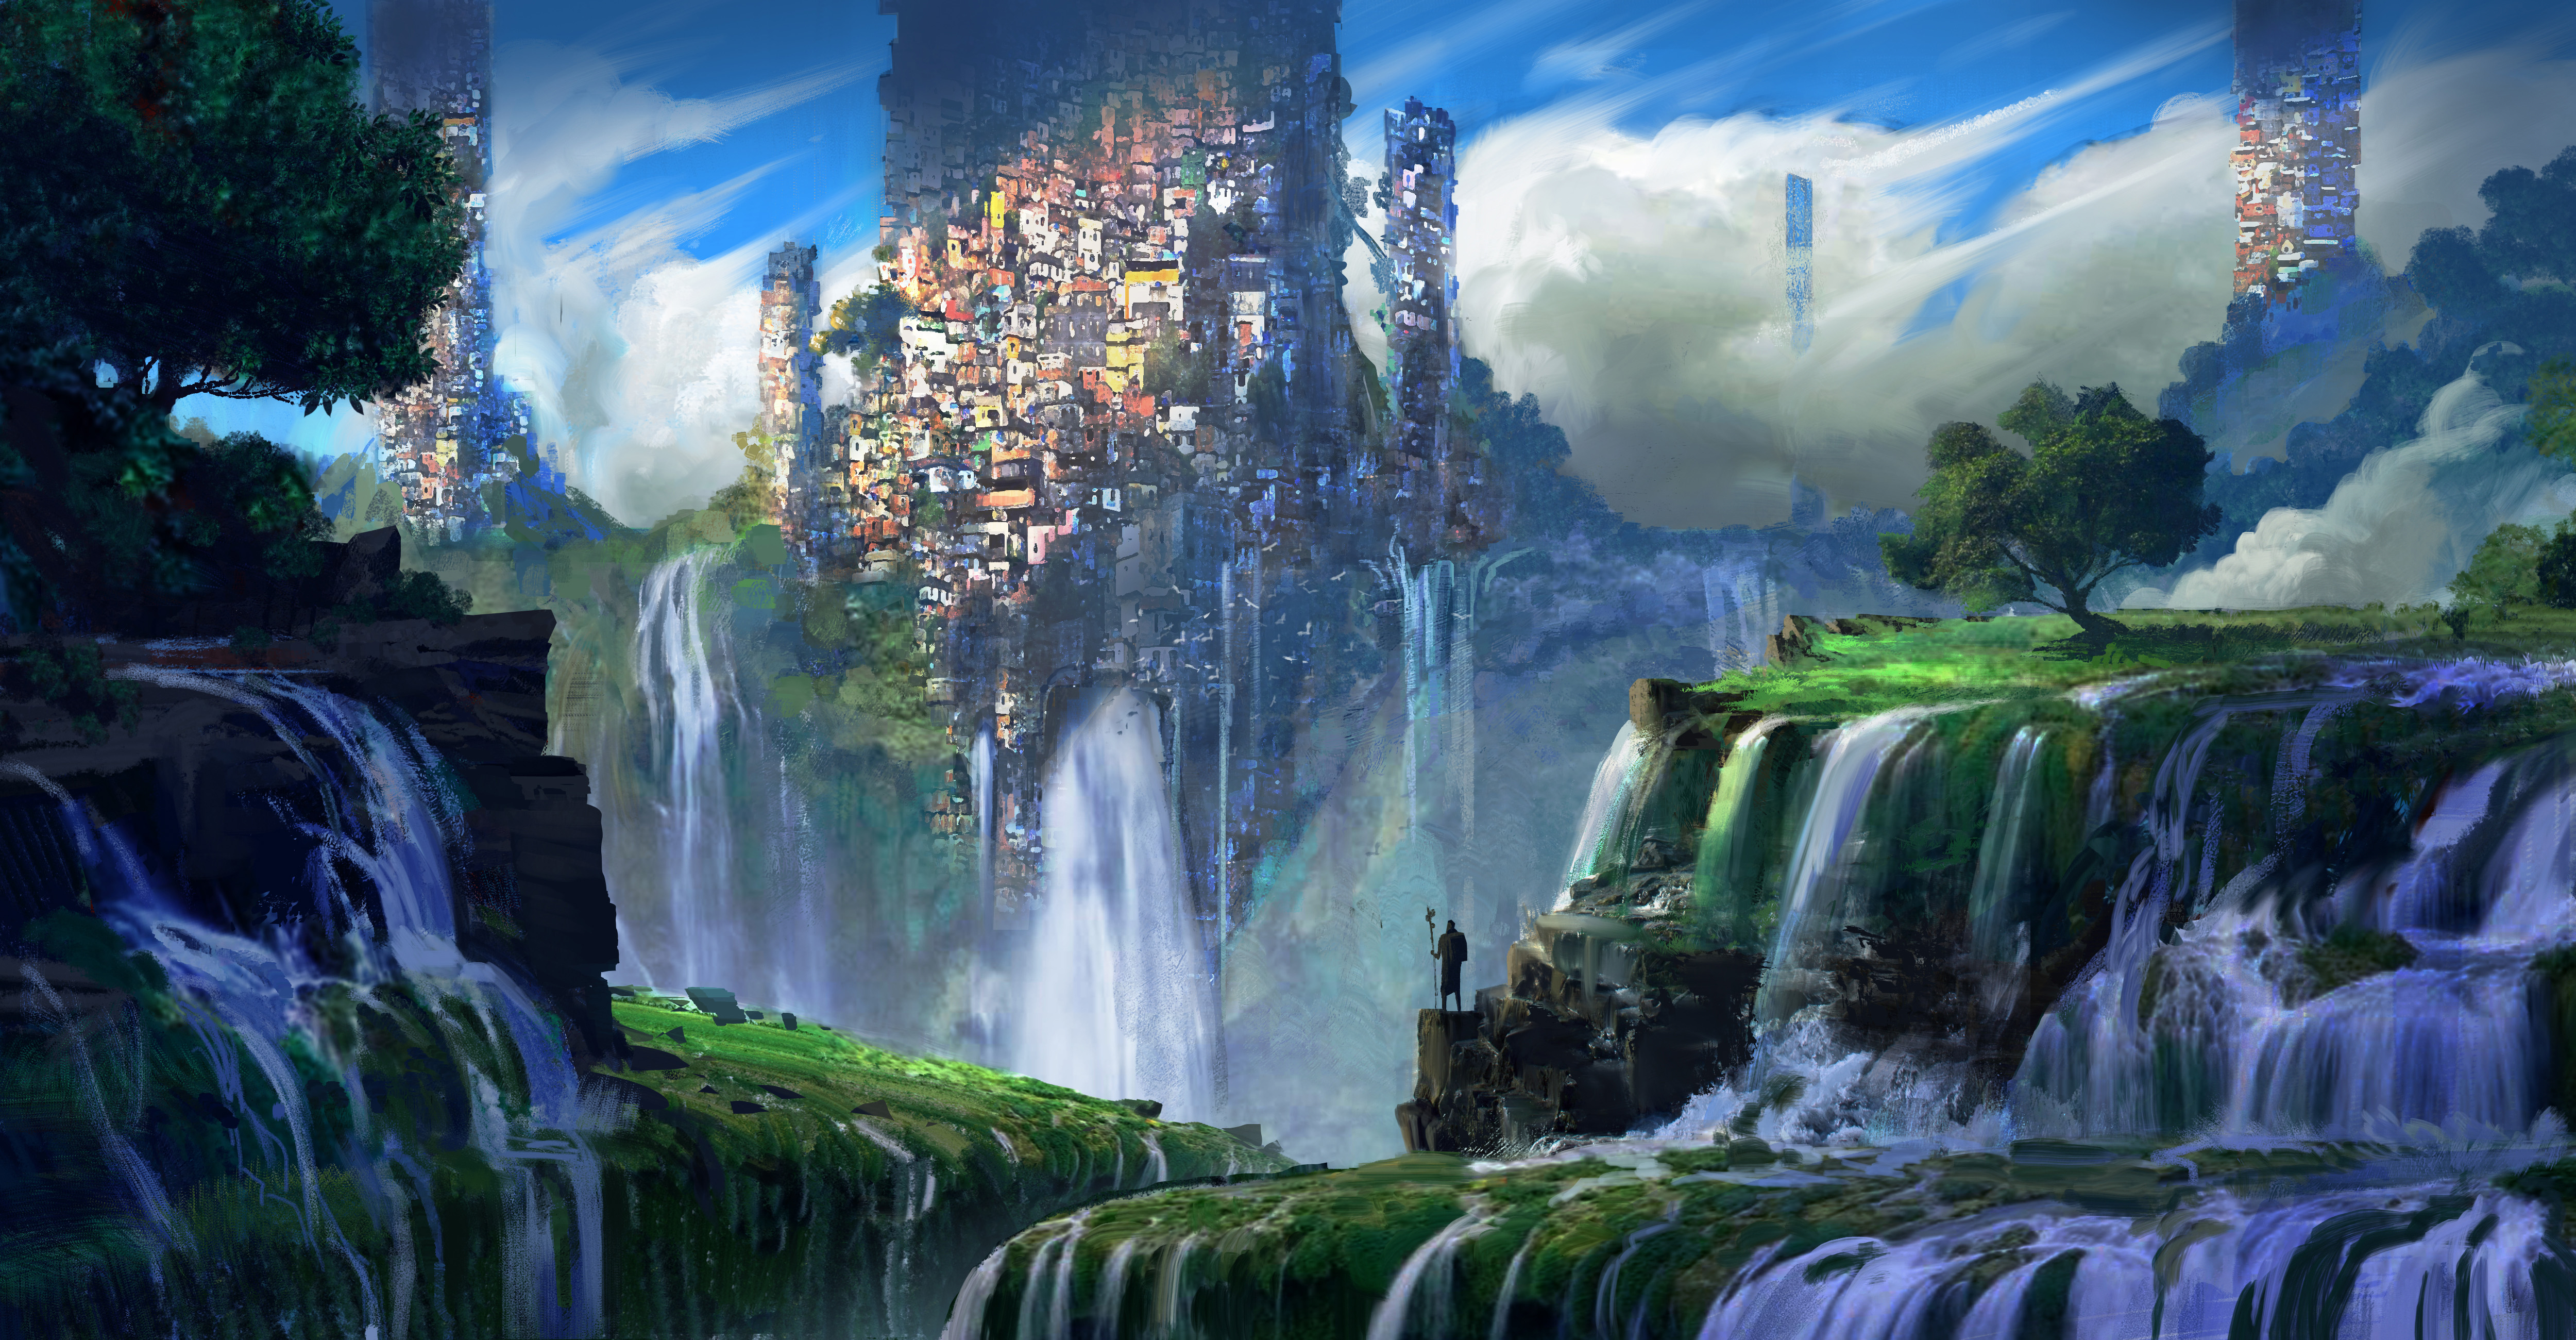 Fantasy Landscape 4k Ultra Hd Wallpaper Background Image 5000x2600 Id 814650 Wallpaper Abyss